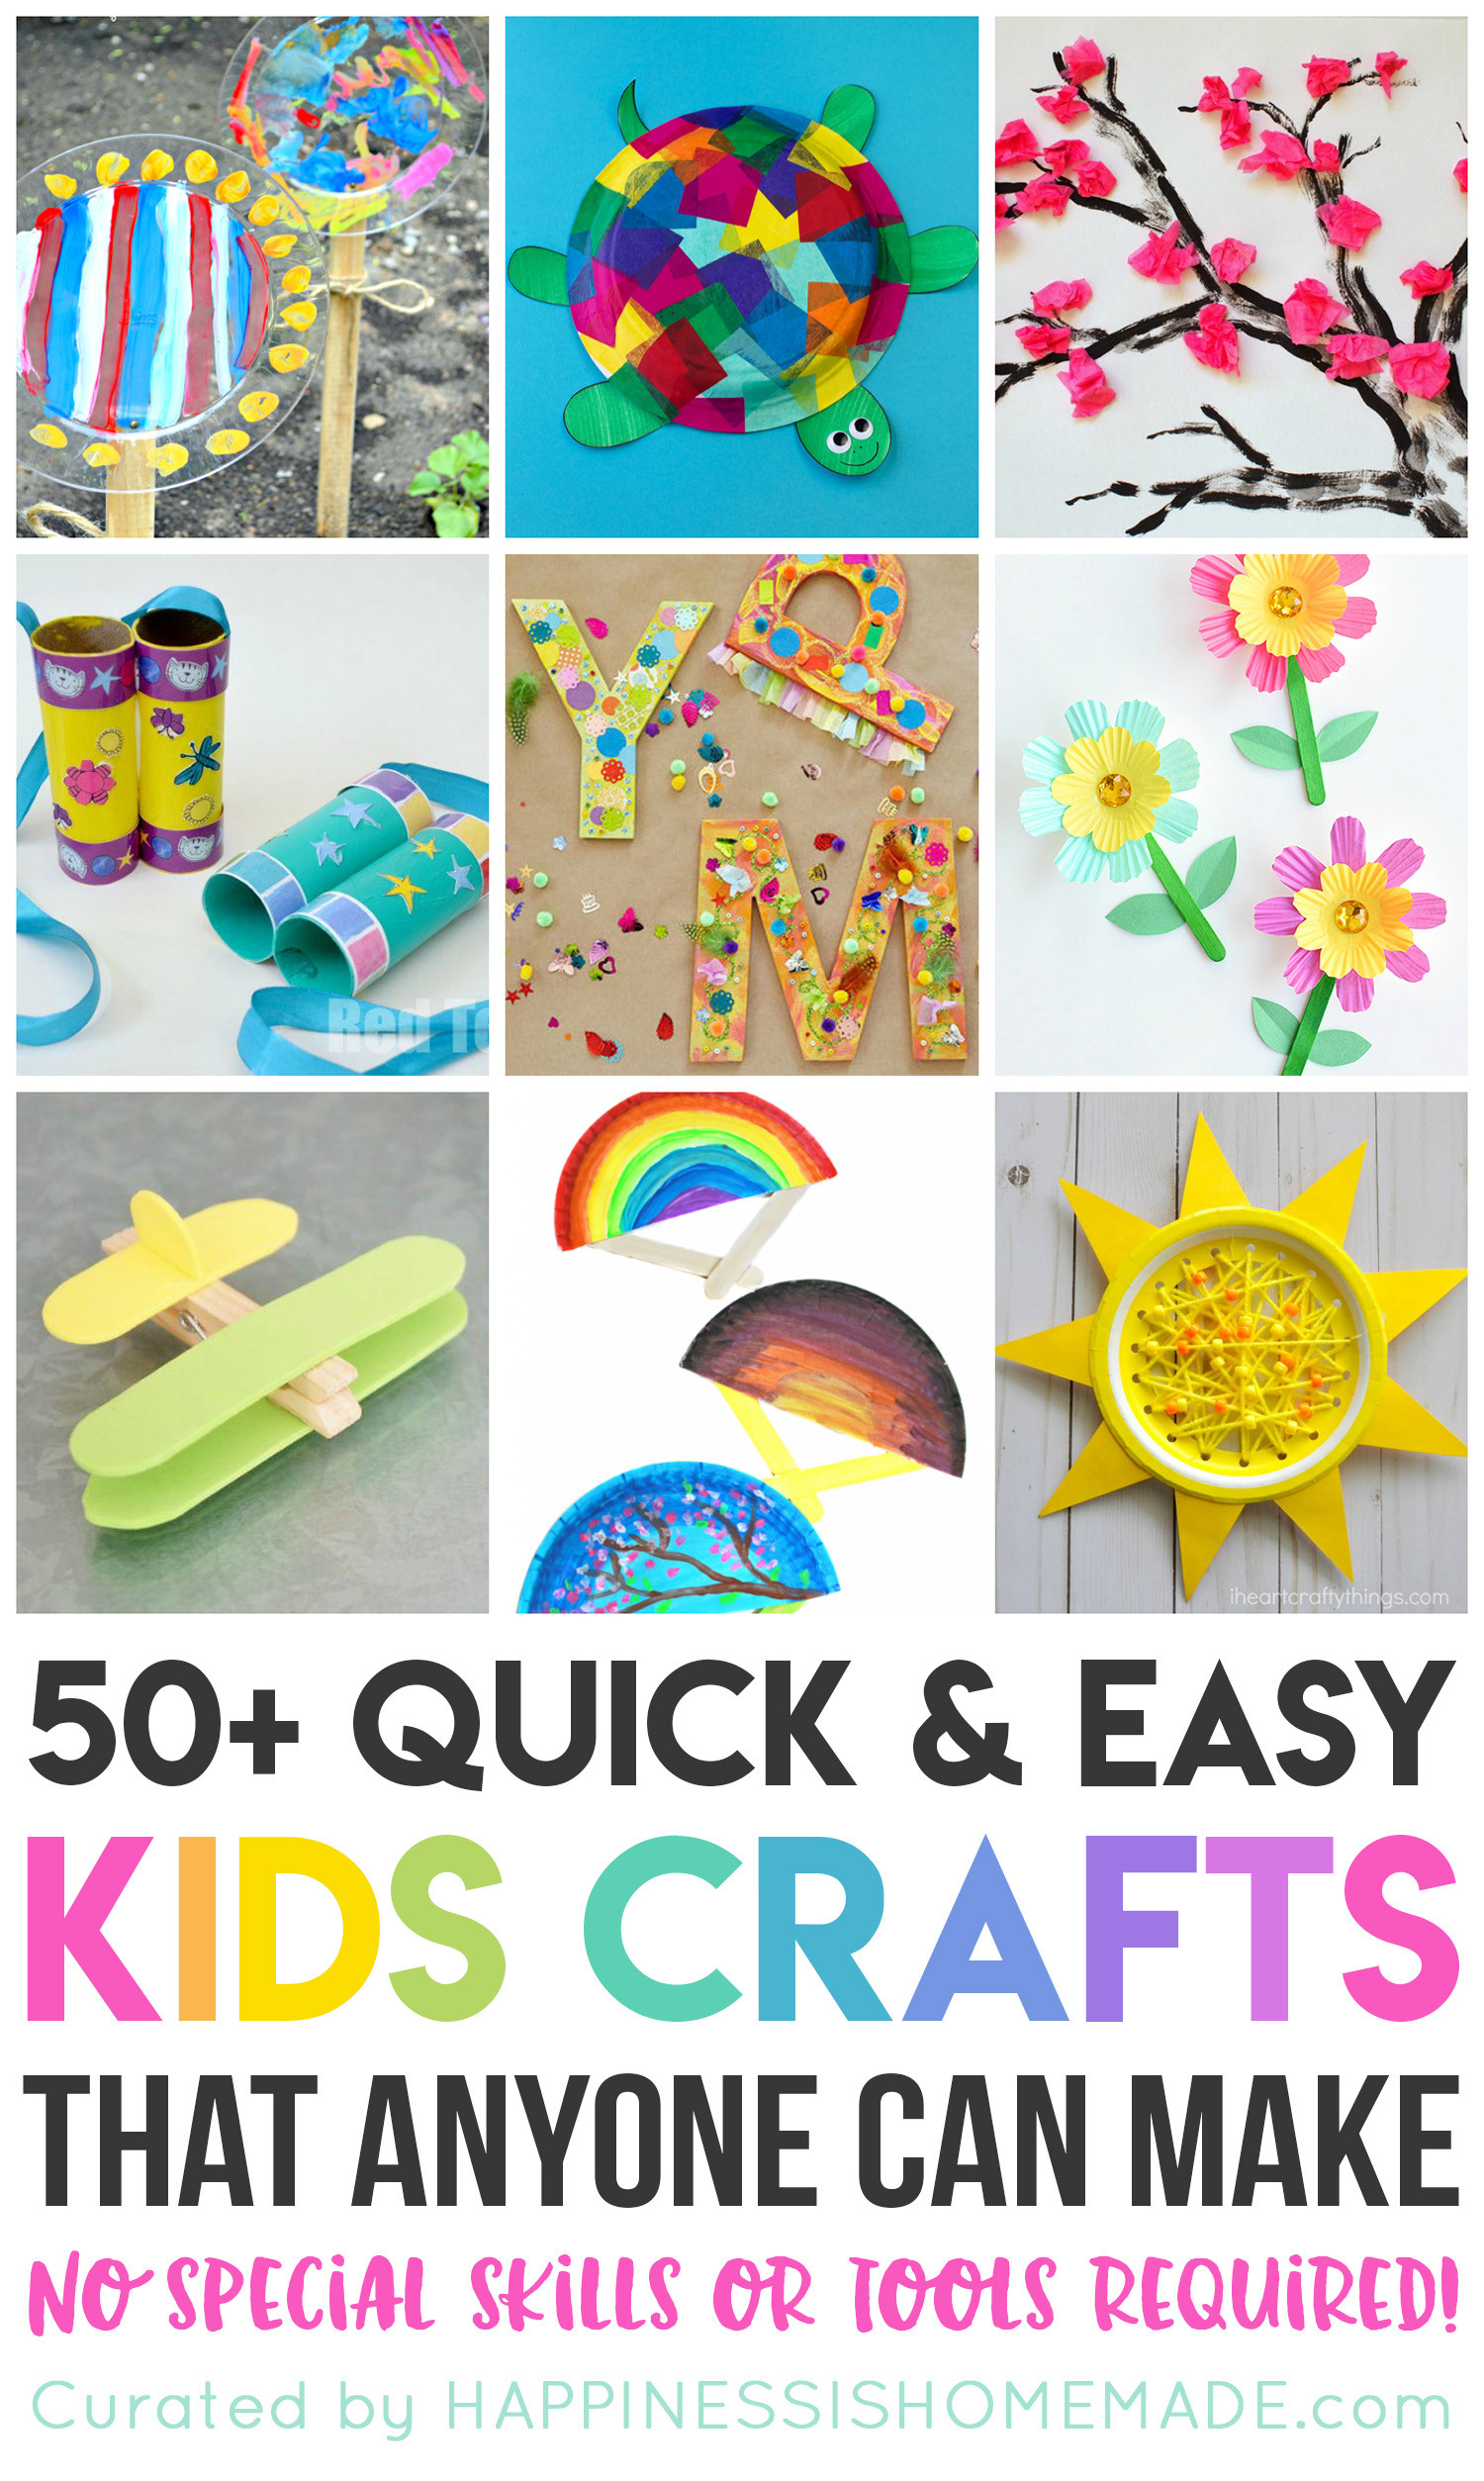 Best ideas about Easy Kids Crafts . Save or Pin Quick & Easy Halloween Crafts for Kids Happiness is Homemade Now.